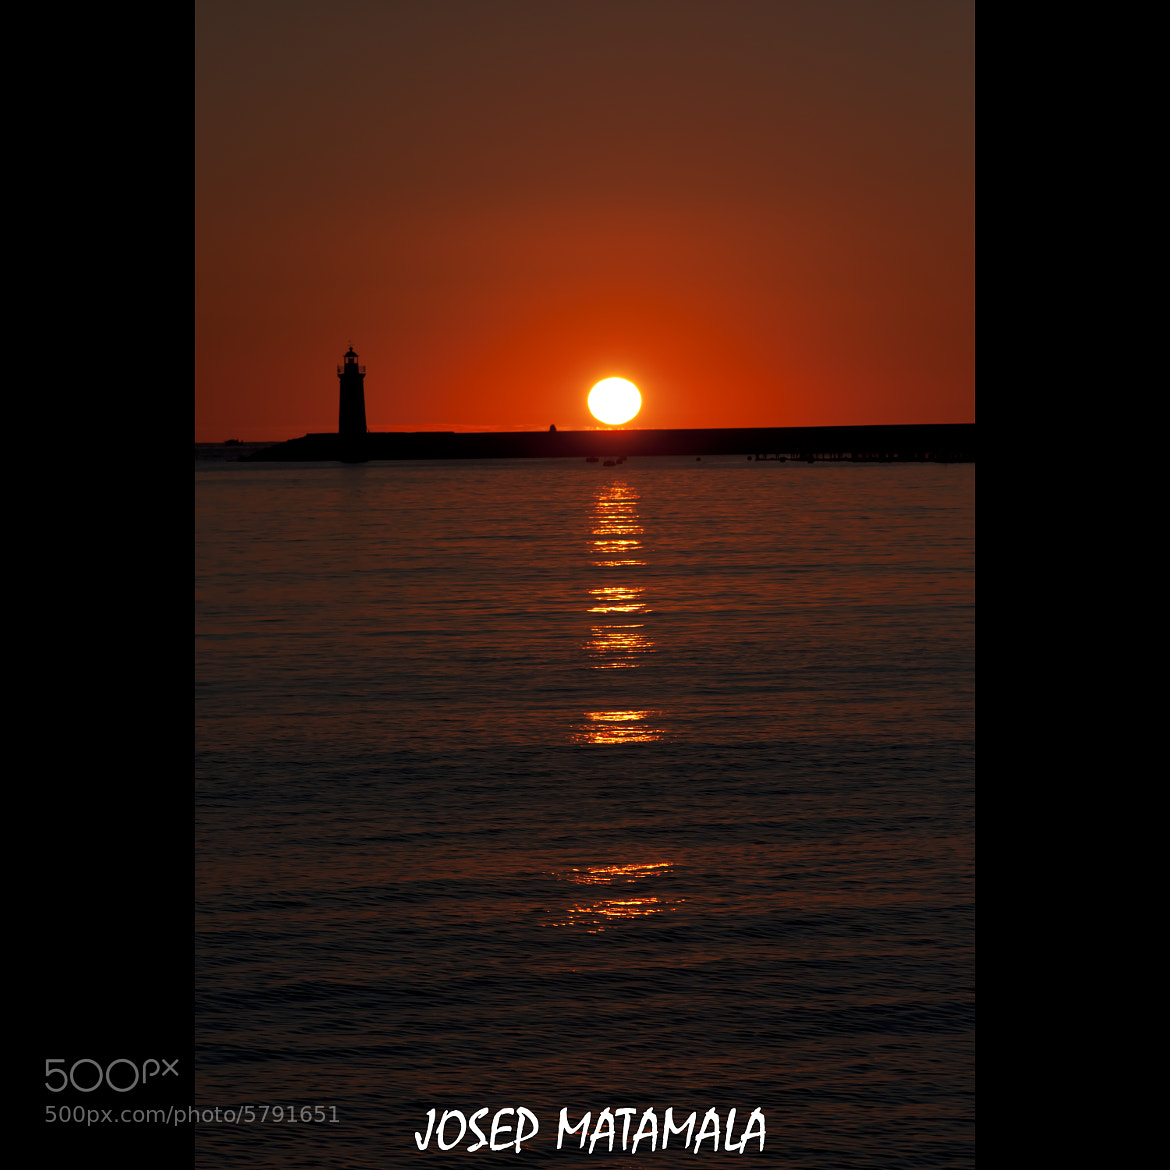 Photograph POSTA DEL SOL by JOSEP MATAMALA on 500px